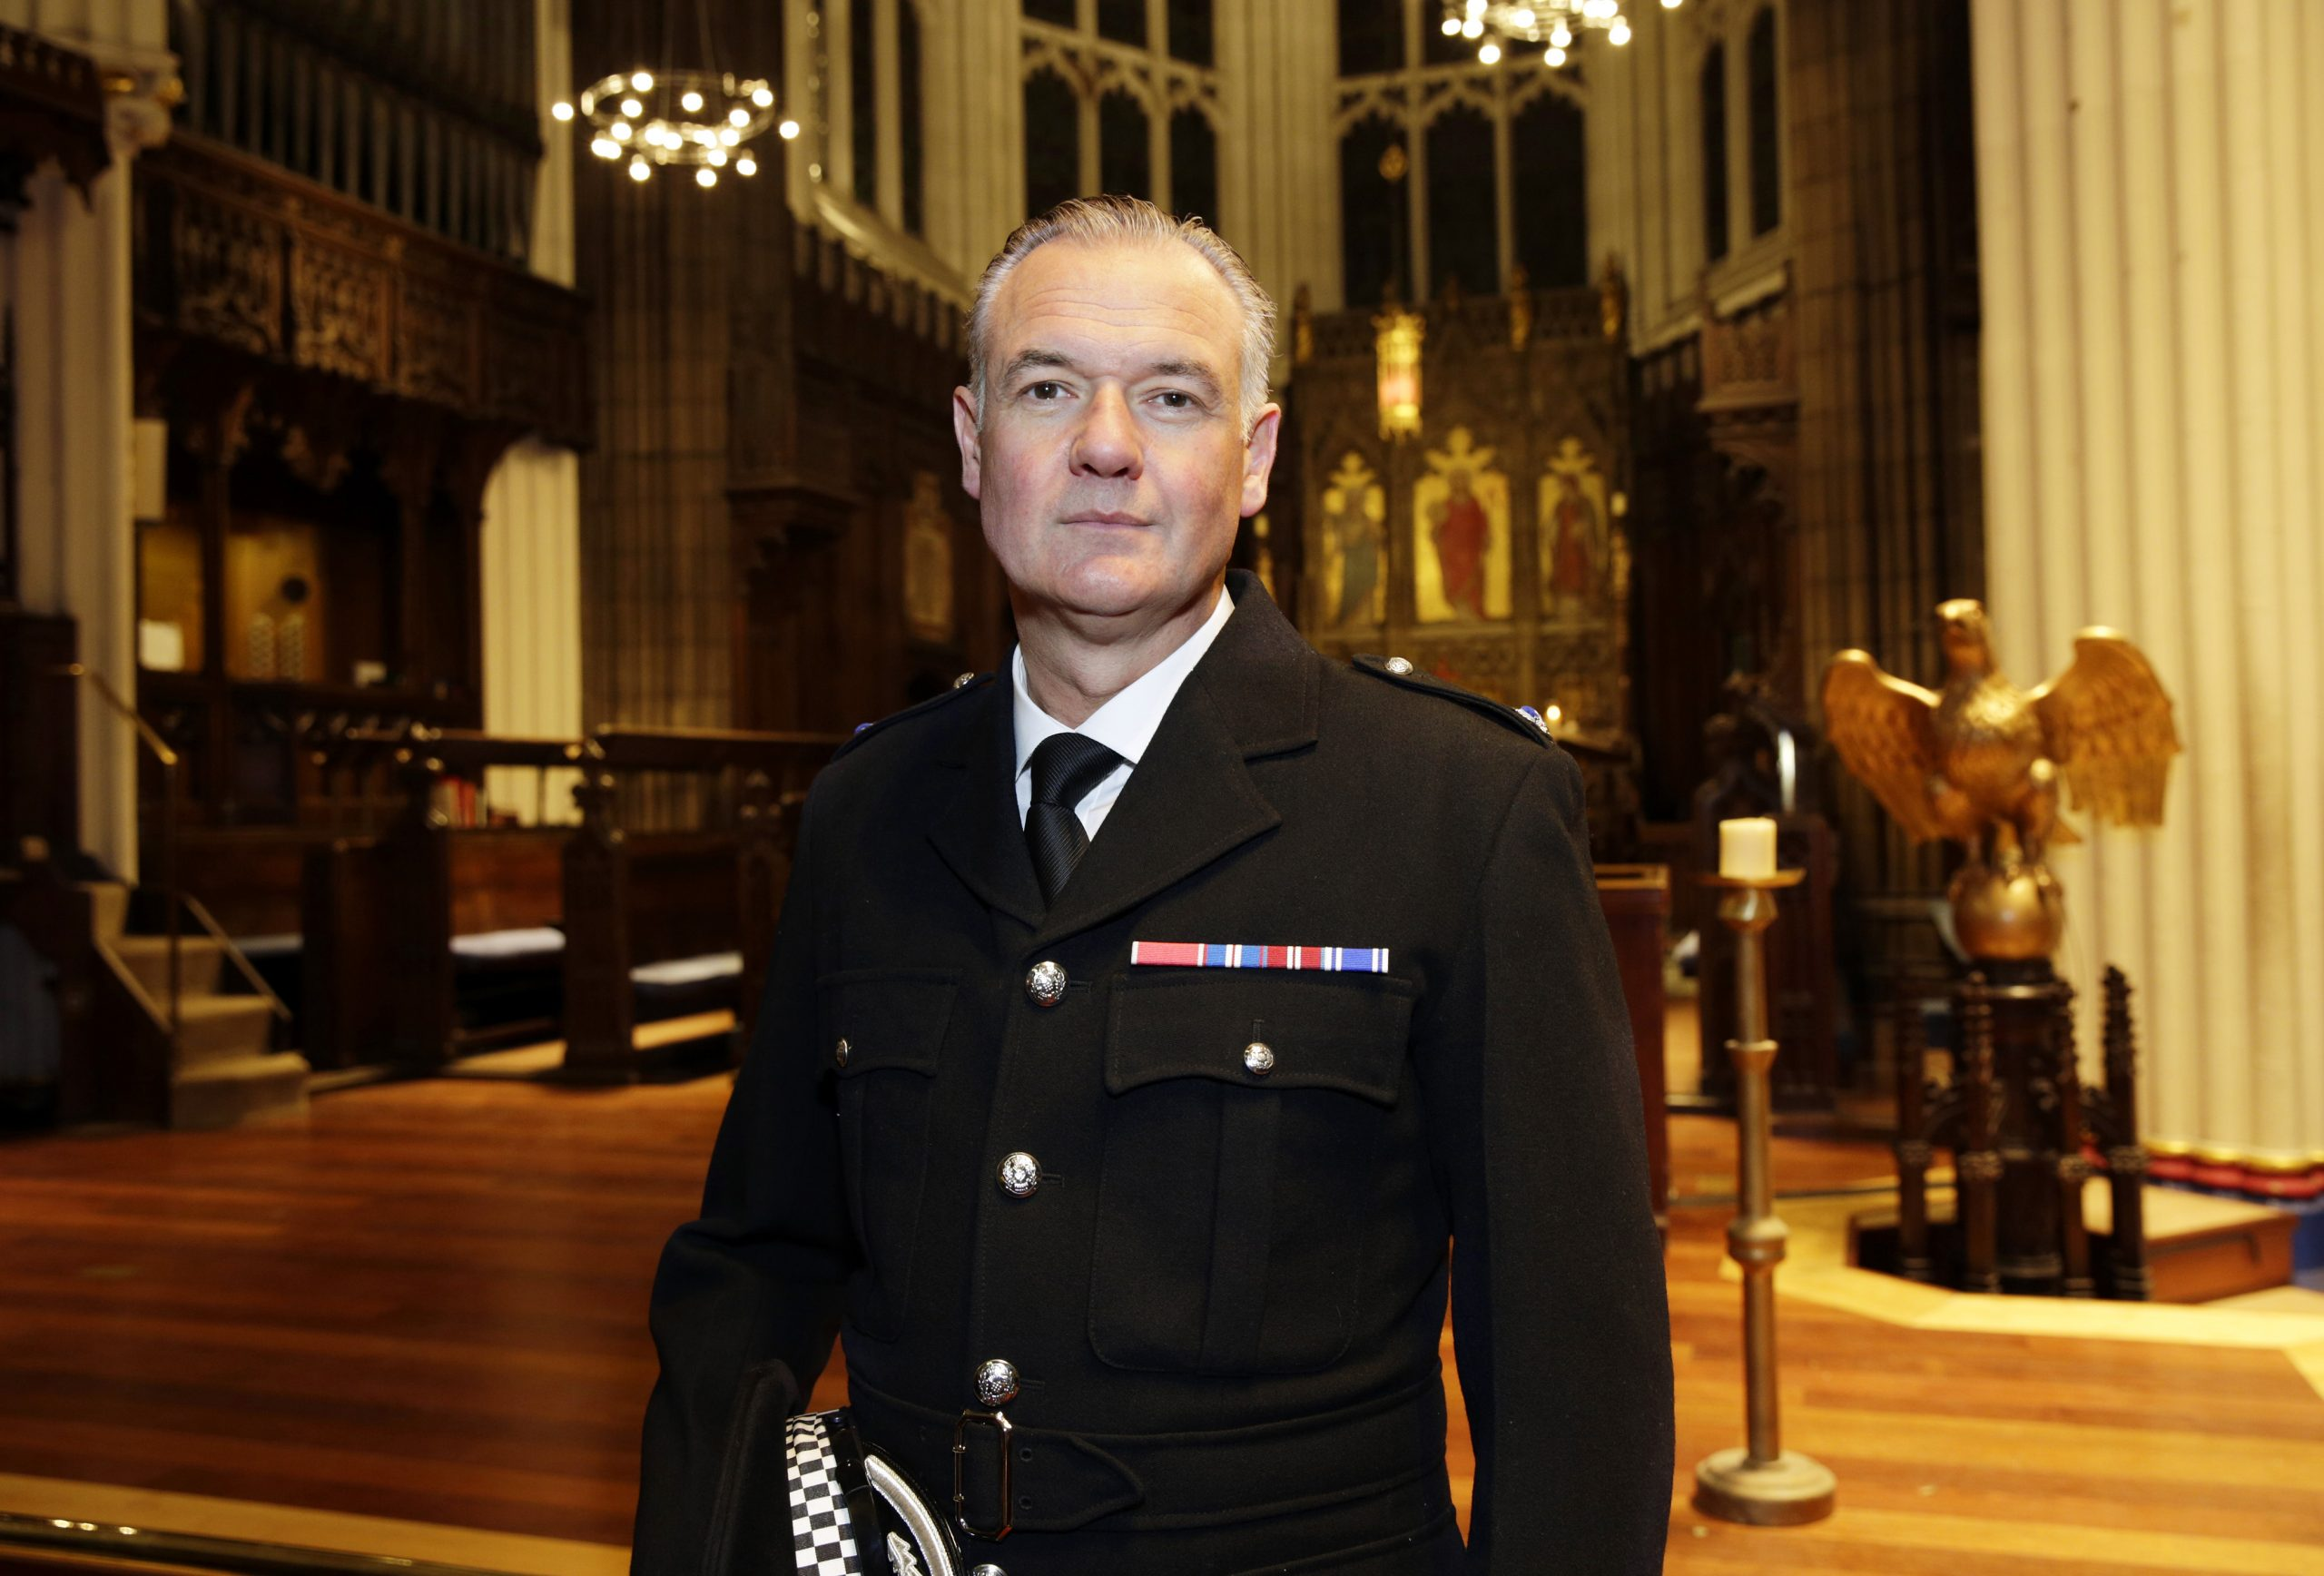 Andy McKay MBE